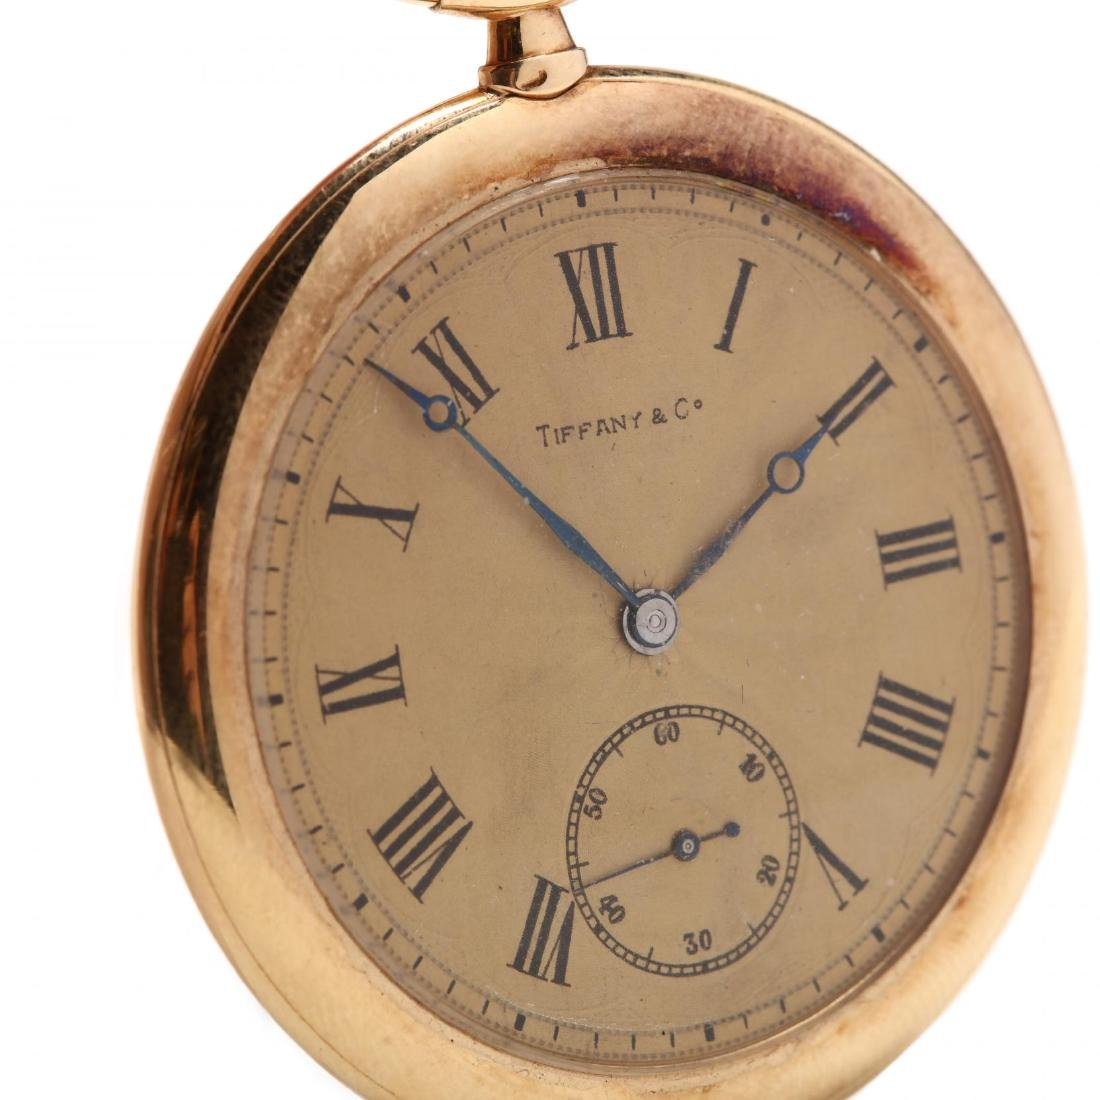 Vintage Tiffany & Co. 18KT Pocket Watch with - 6